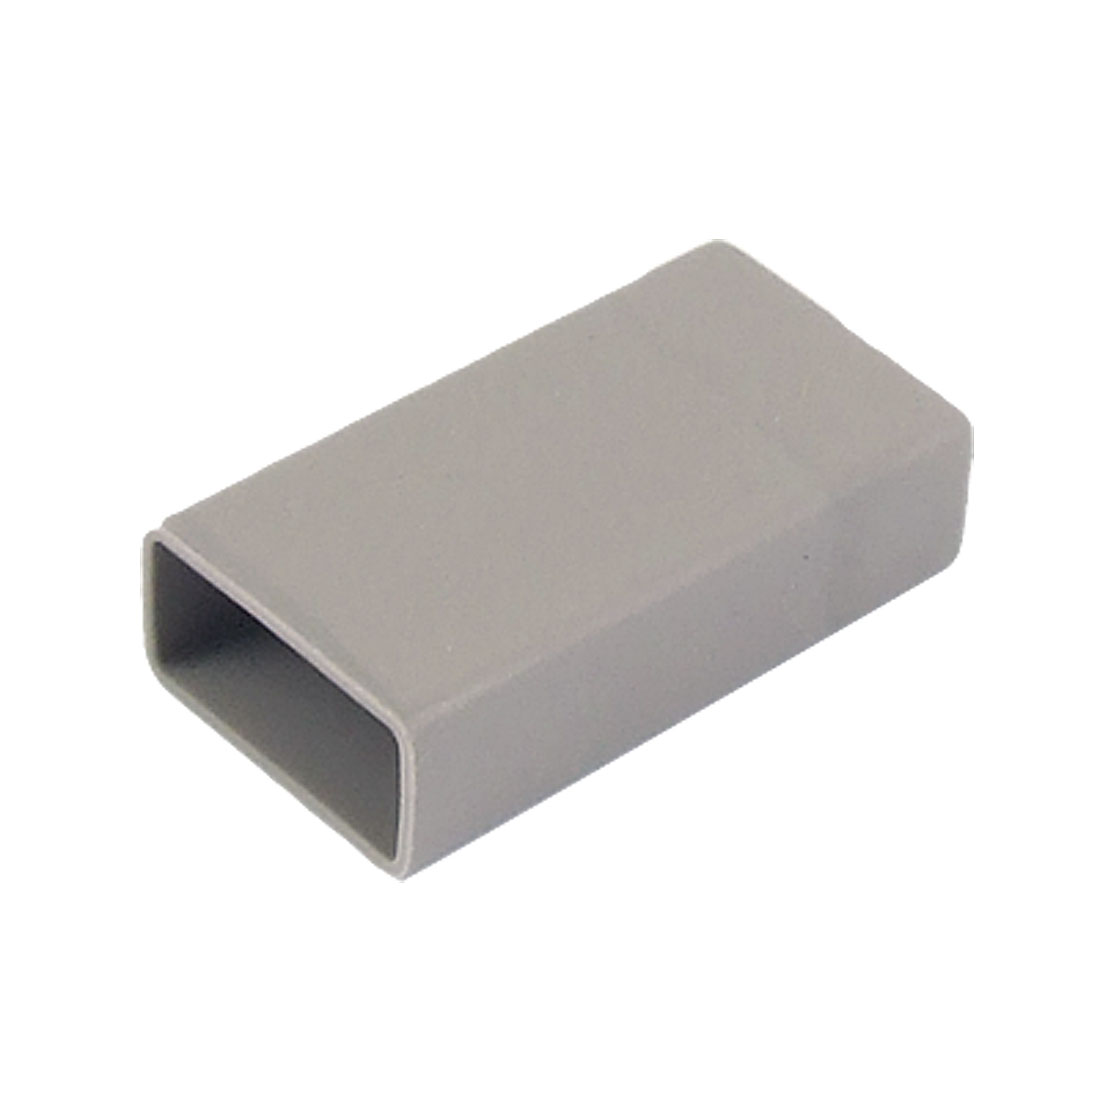 TO-220A Diode Triode Transistor Gray Thermal Insulation Silicone Cap 500 Pcs